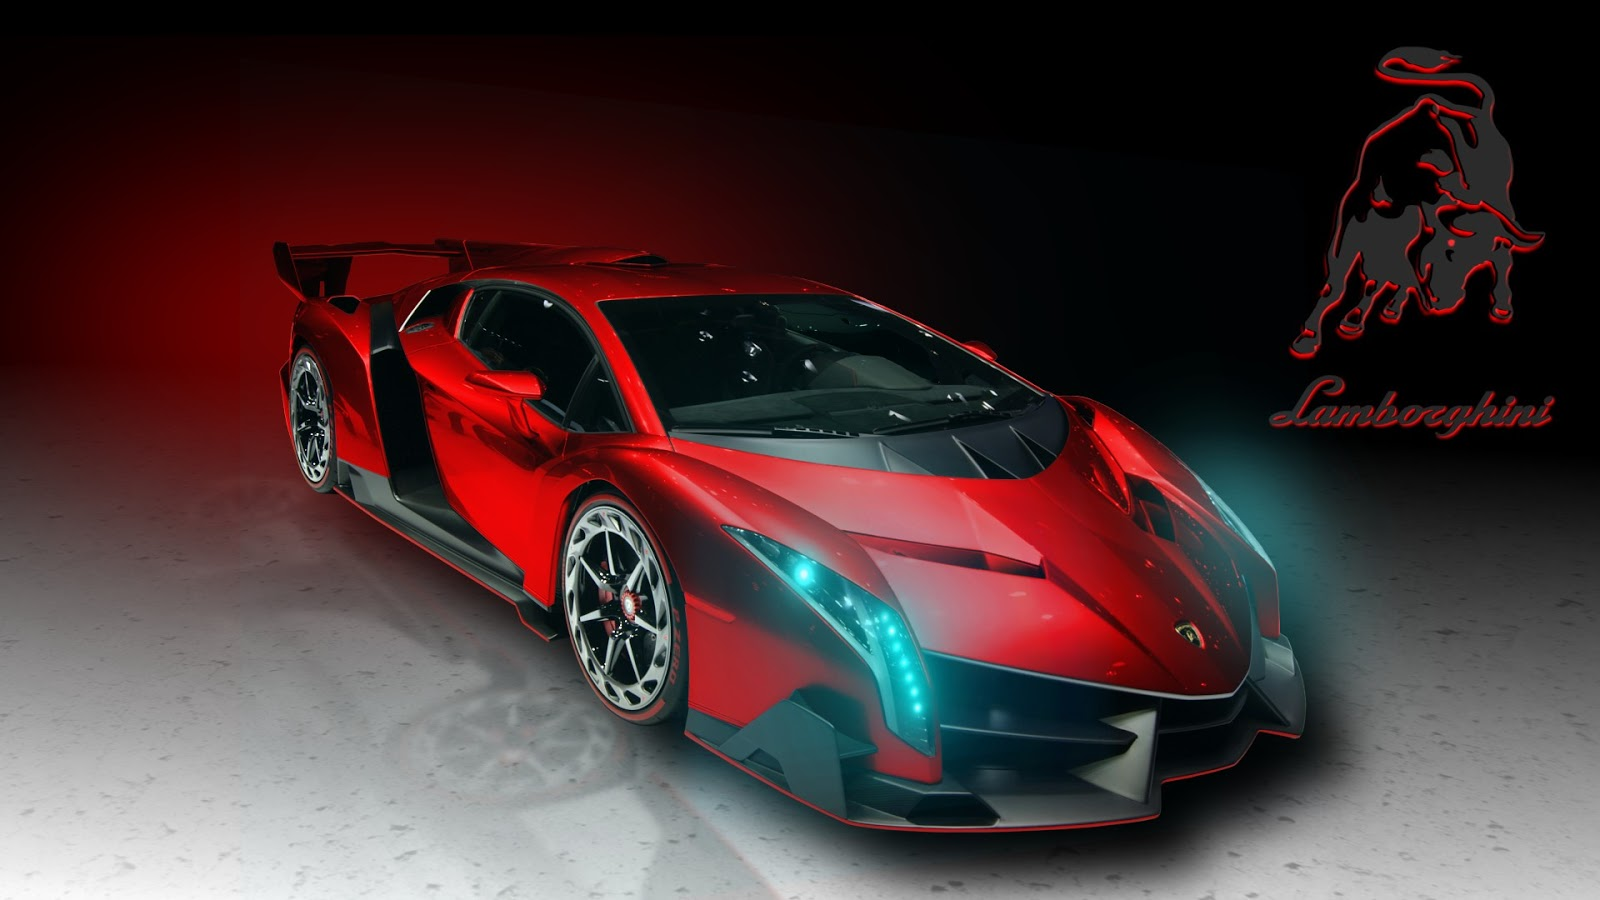 Daily Amazing Fun Car Wallpapers Lamborghini In Red Car Wallpaper